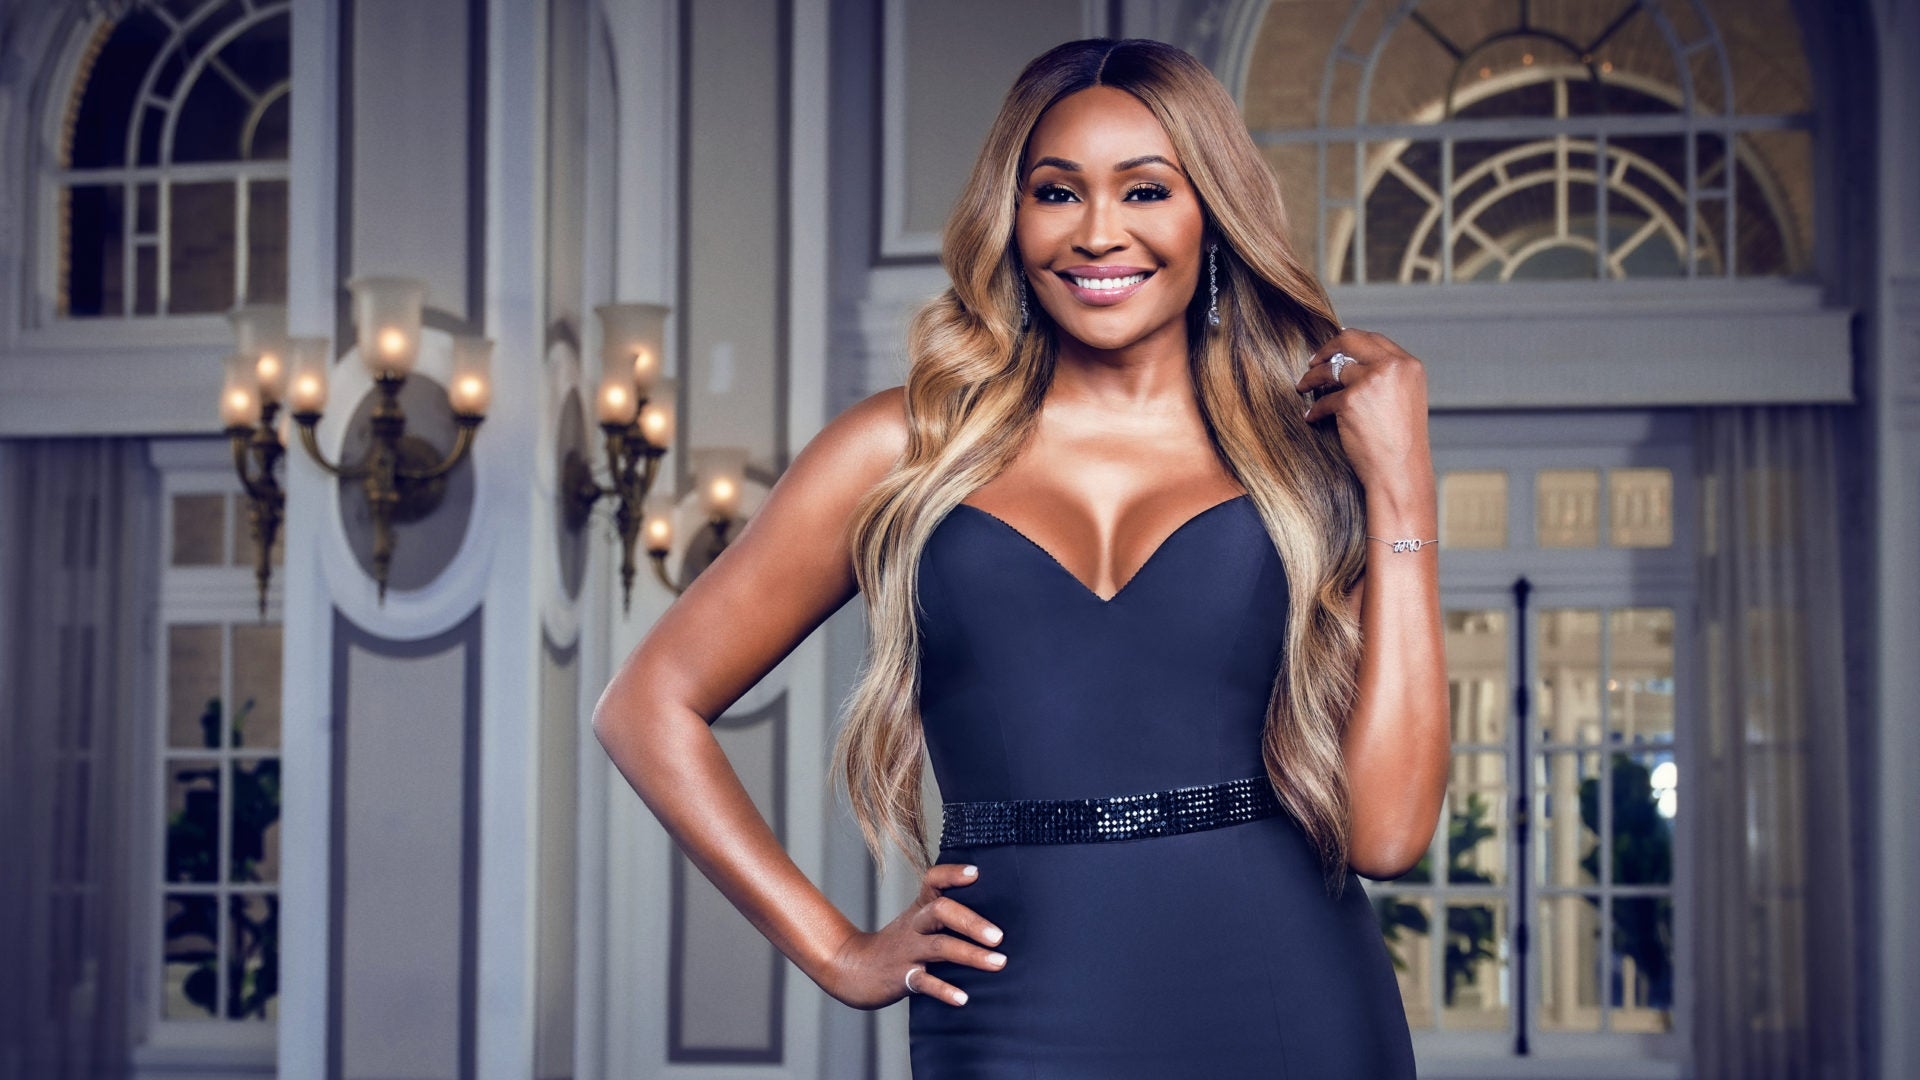 Cynthia Bailey Shows Off Her Beach Body In This Photo – Check It Out Here